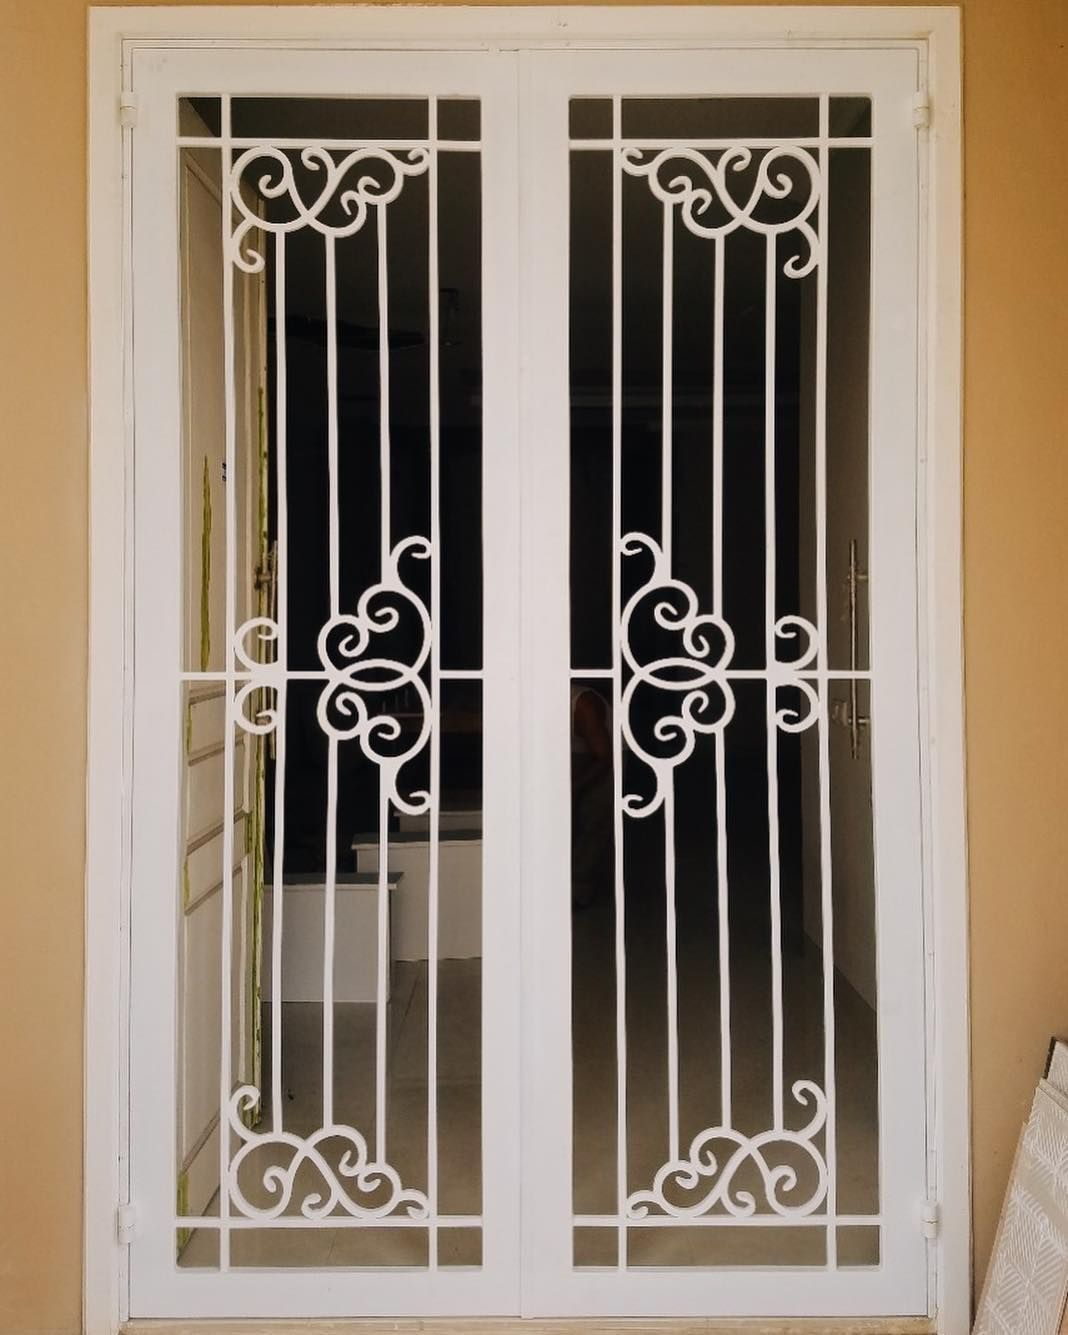 Project Window Grill Gates And Rails In 2019 Pinterest Grill